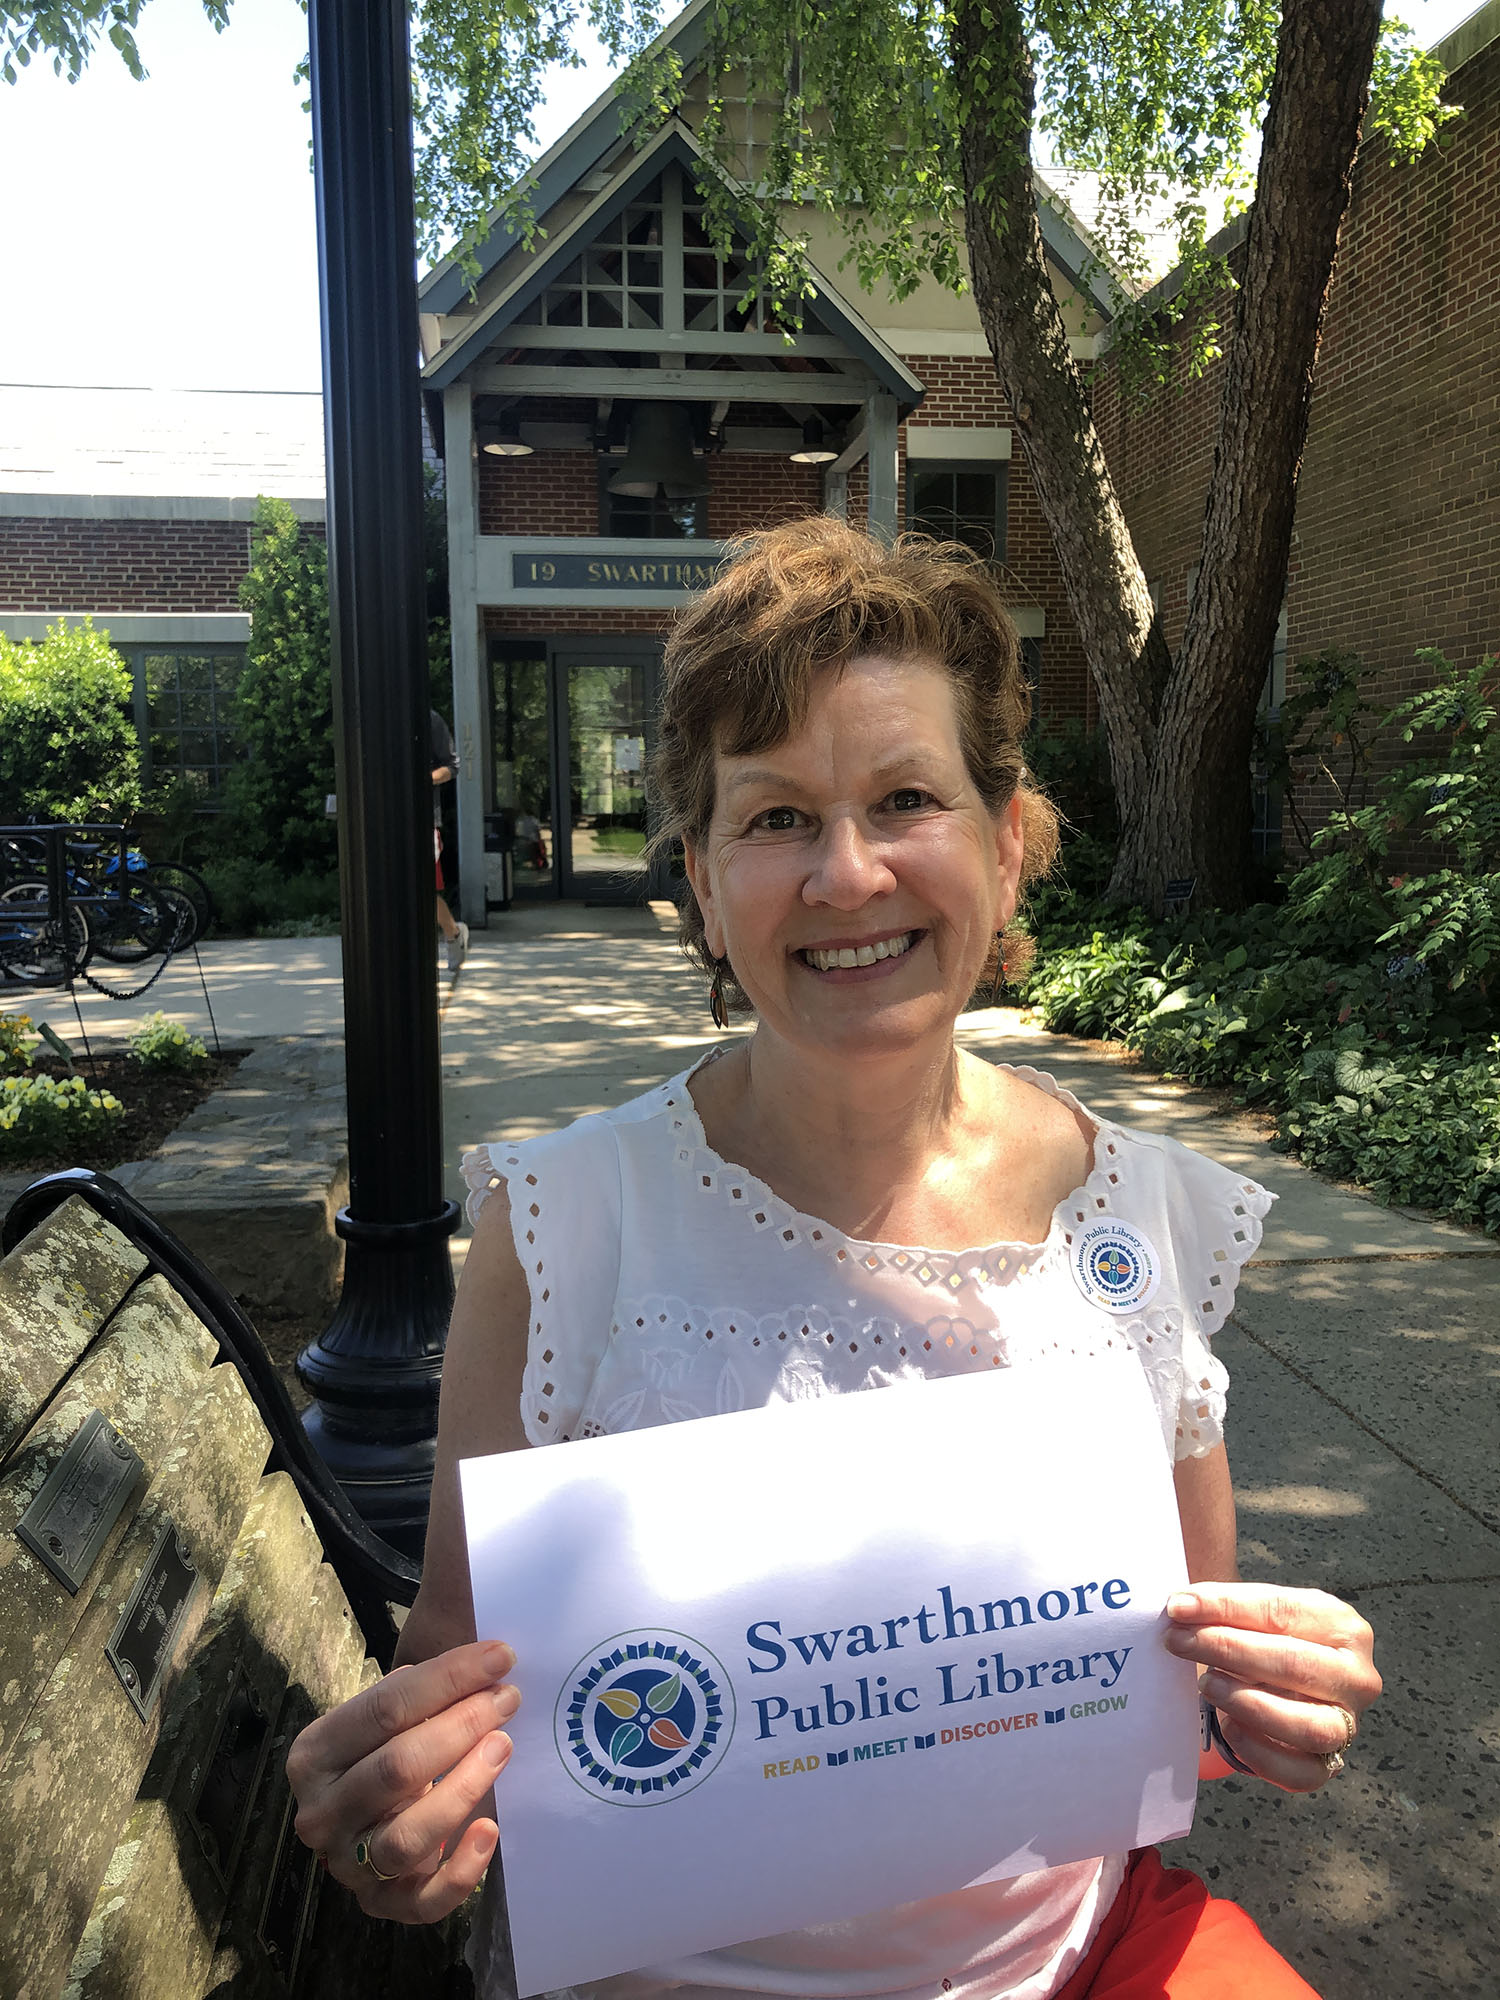 Just in time, Swarthmorean Amy Pollack came up with a vibrant new logo design for the Swarthmore Public Library.